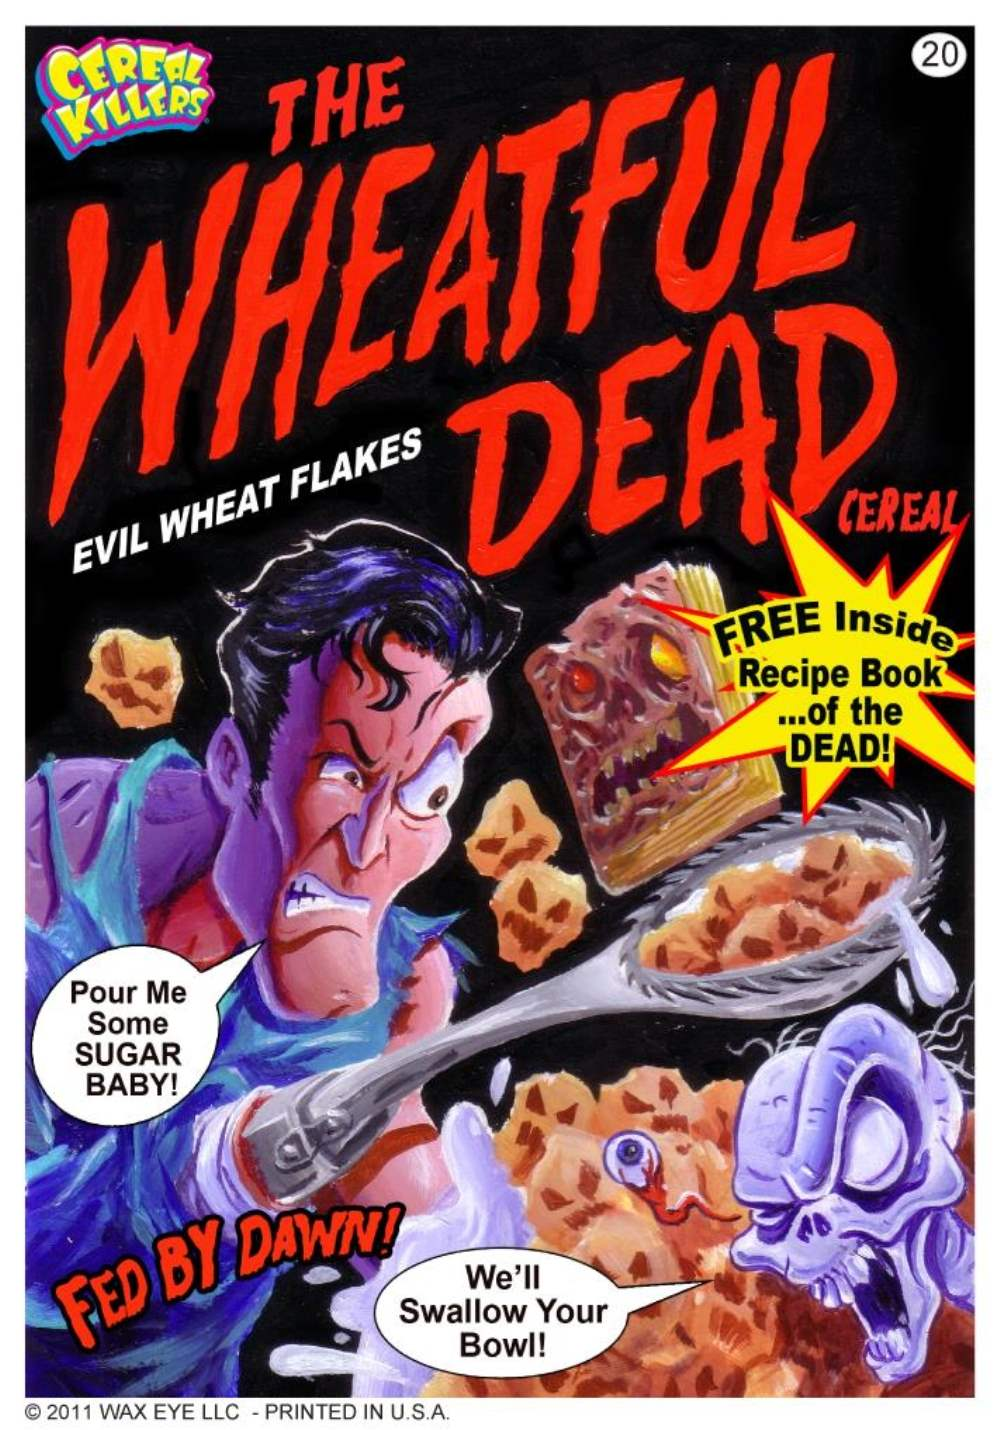 Cereal Killers The Wheatful Dead